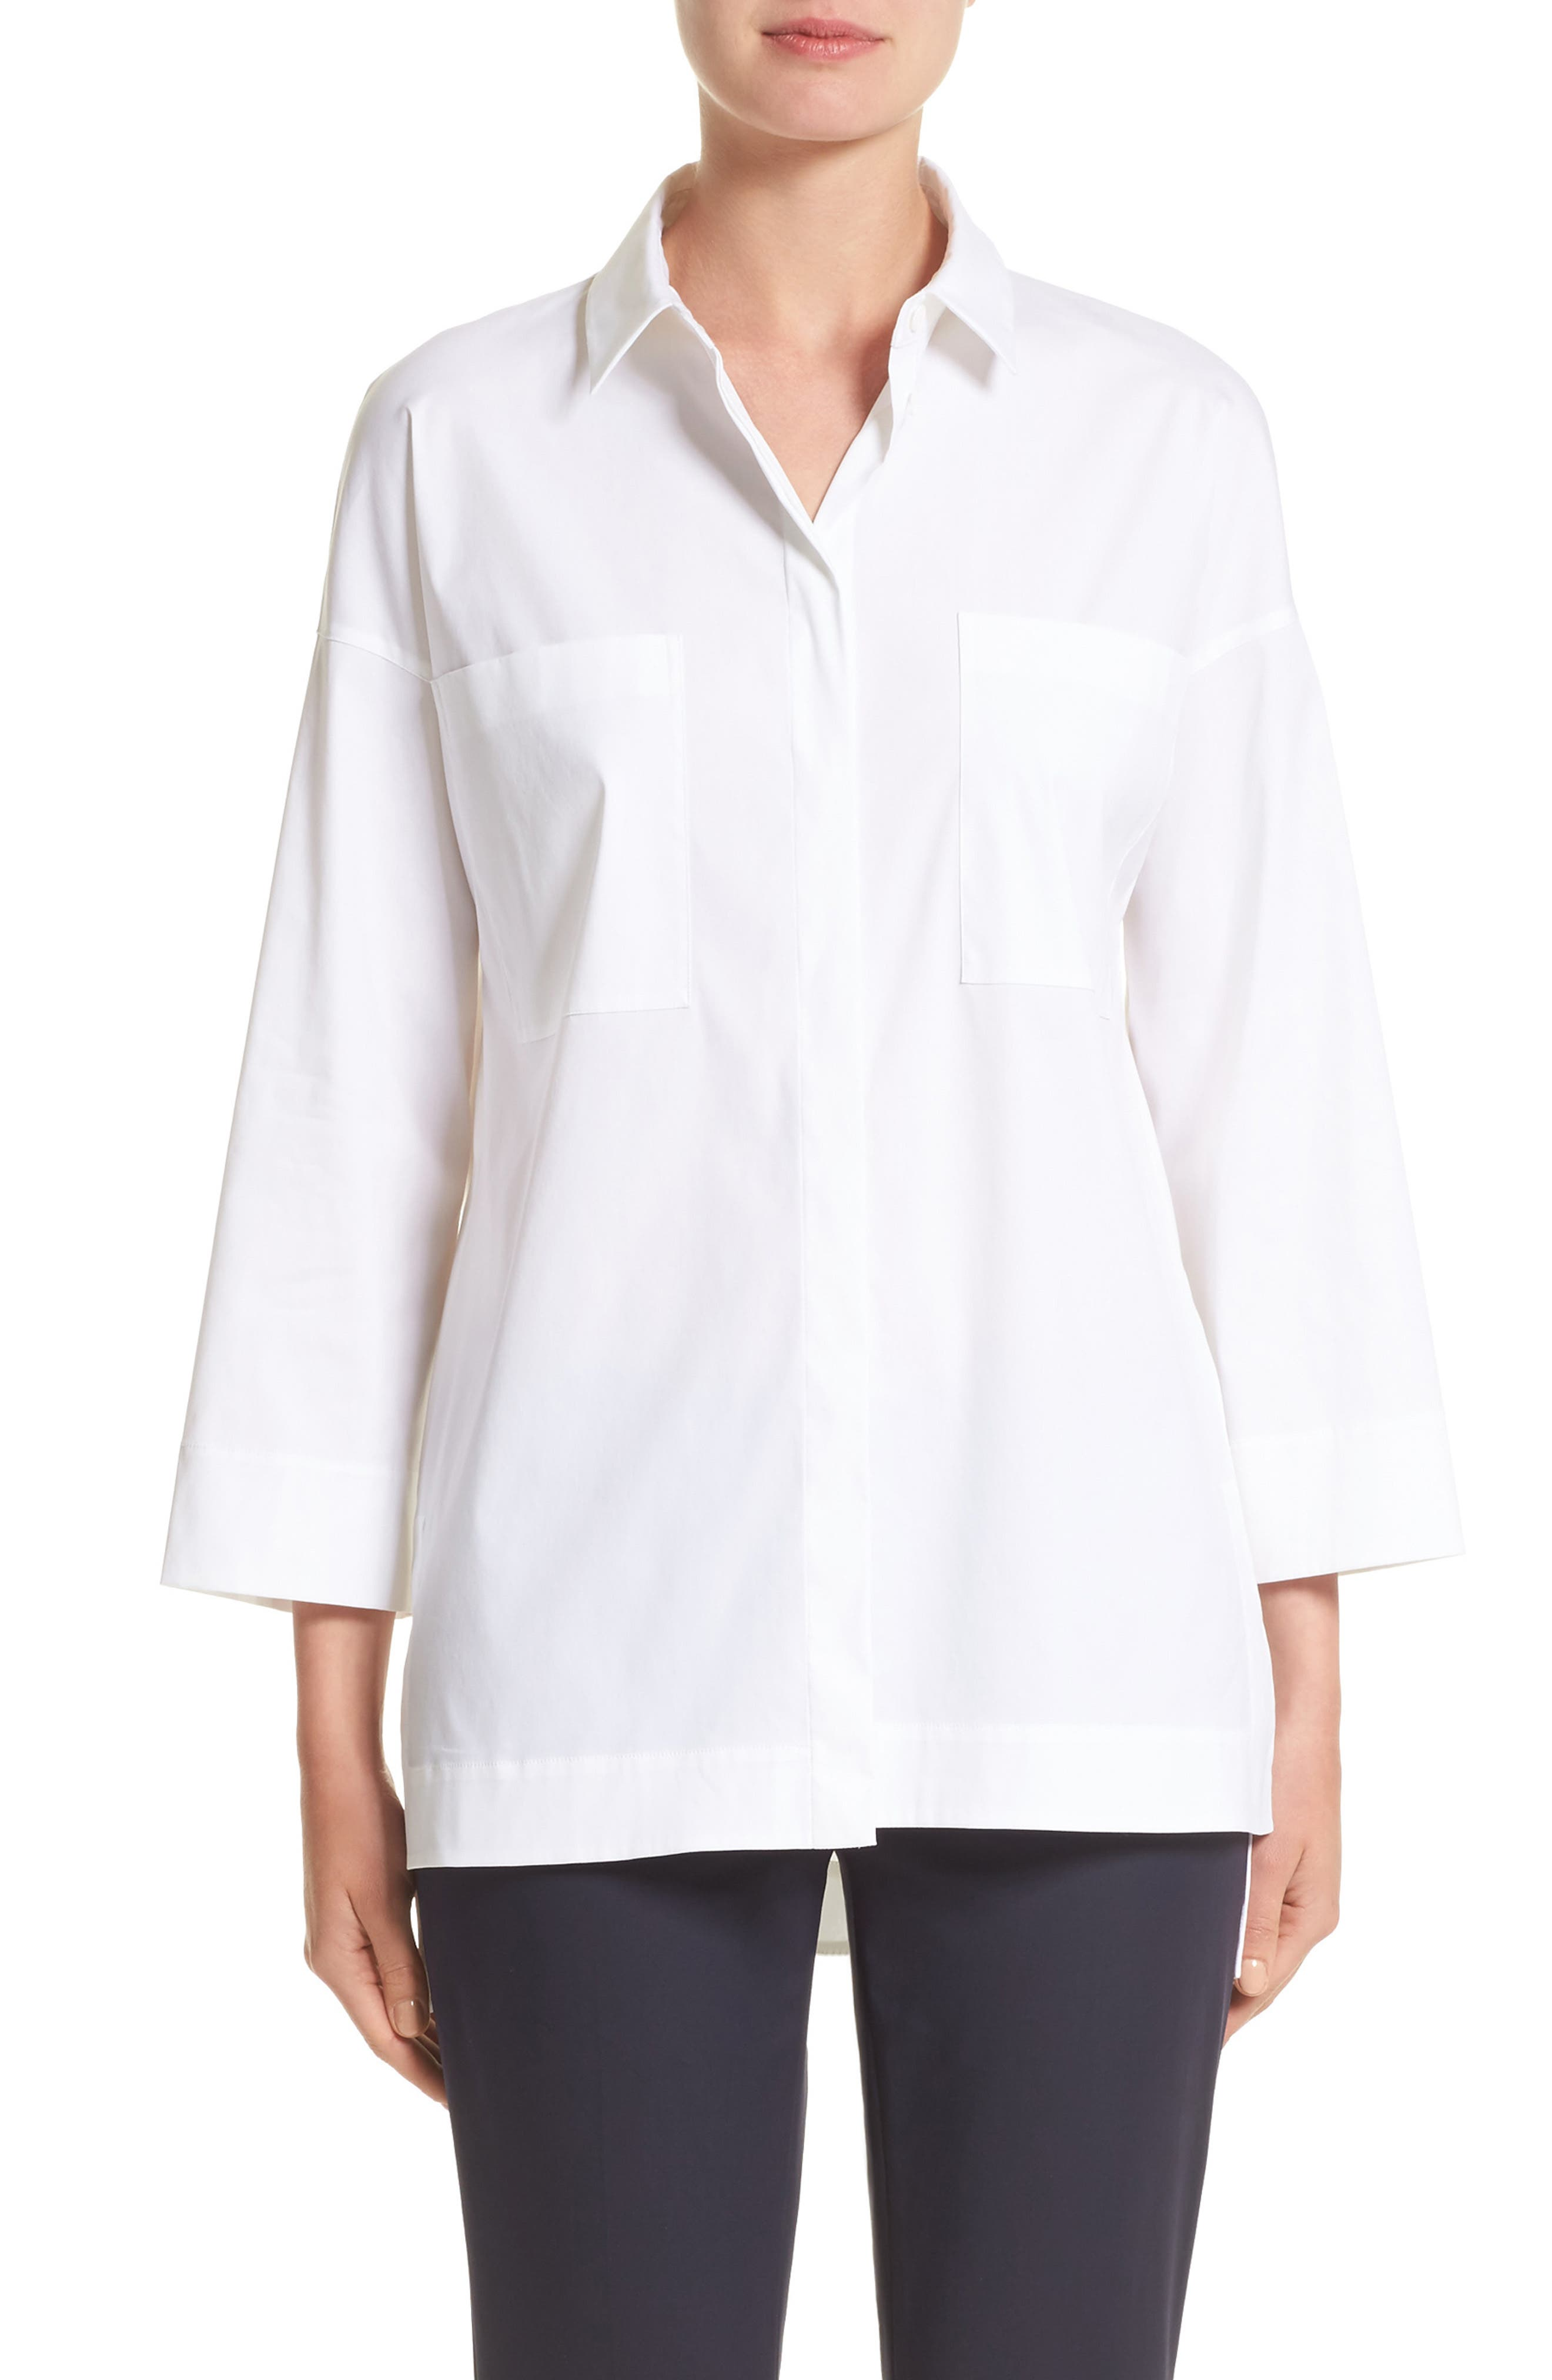 Hensley Blouse,                         Main,                         color, 100